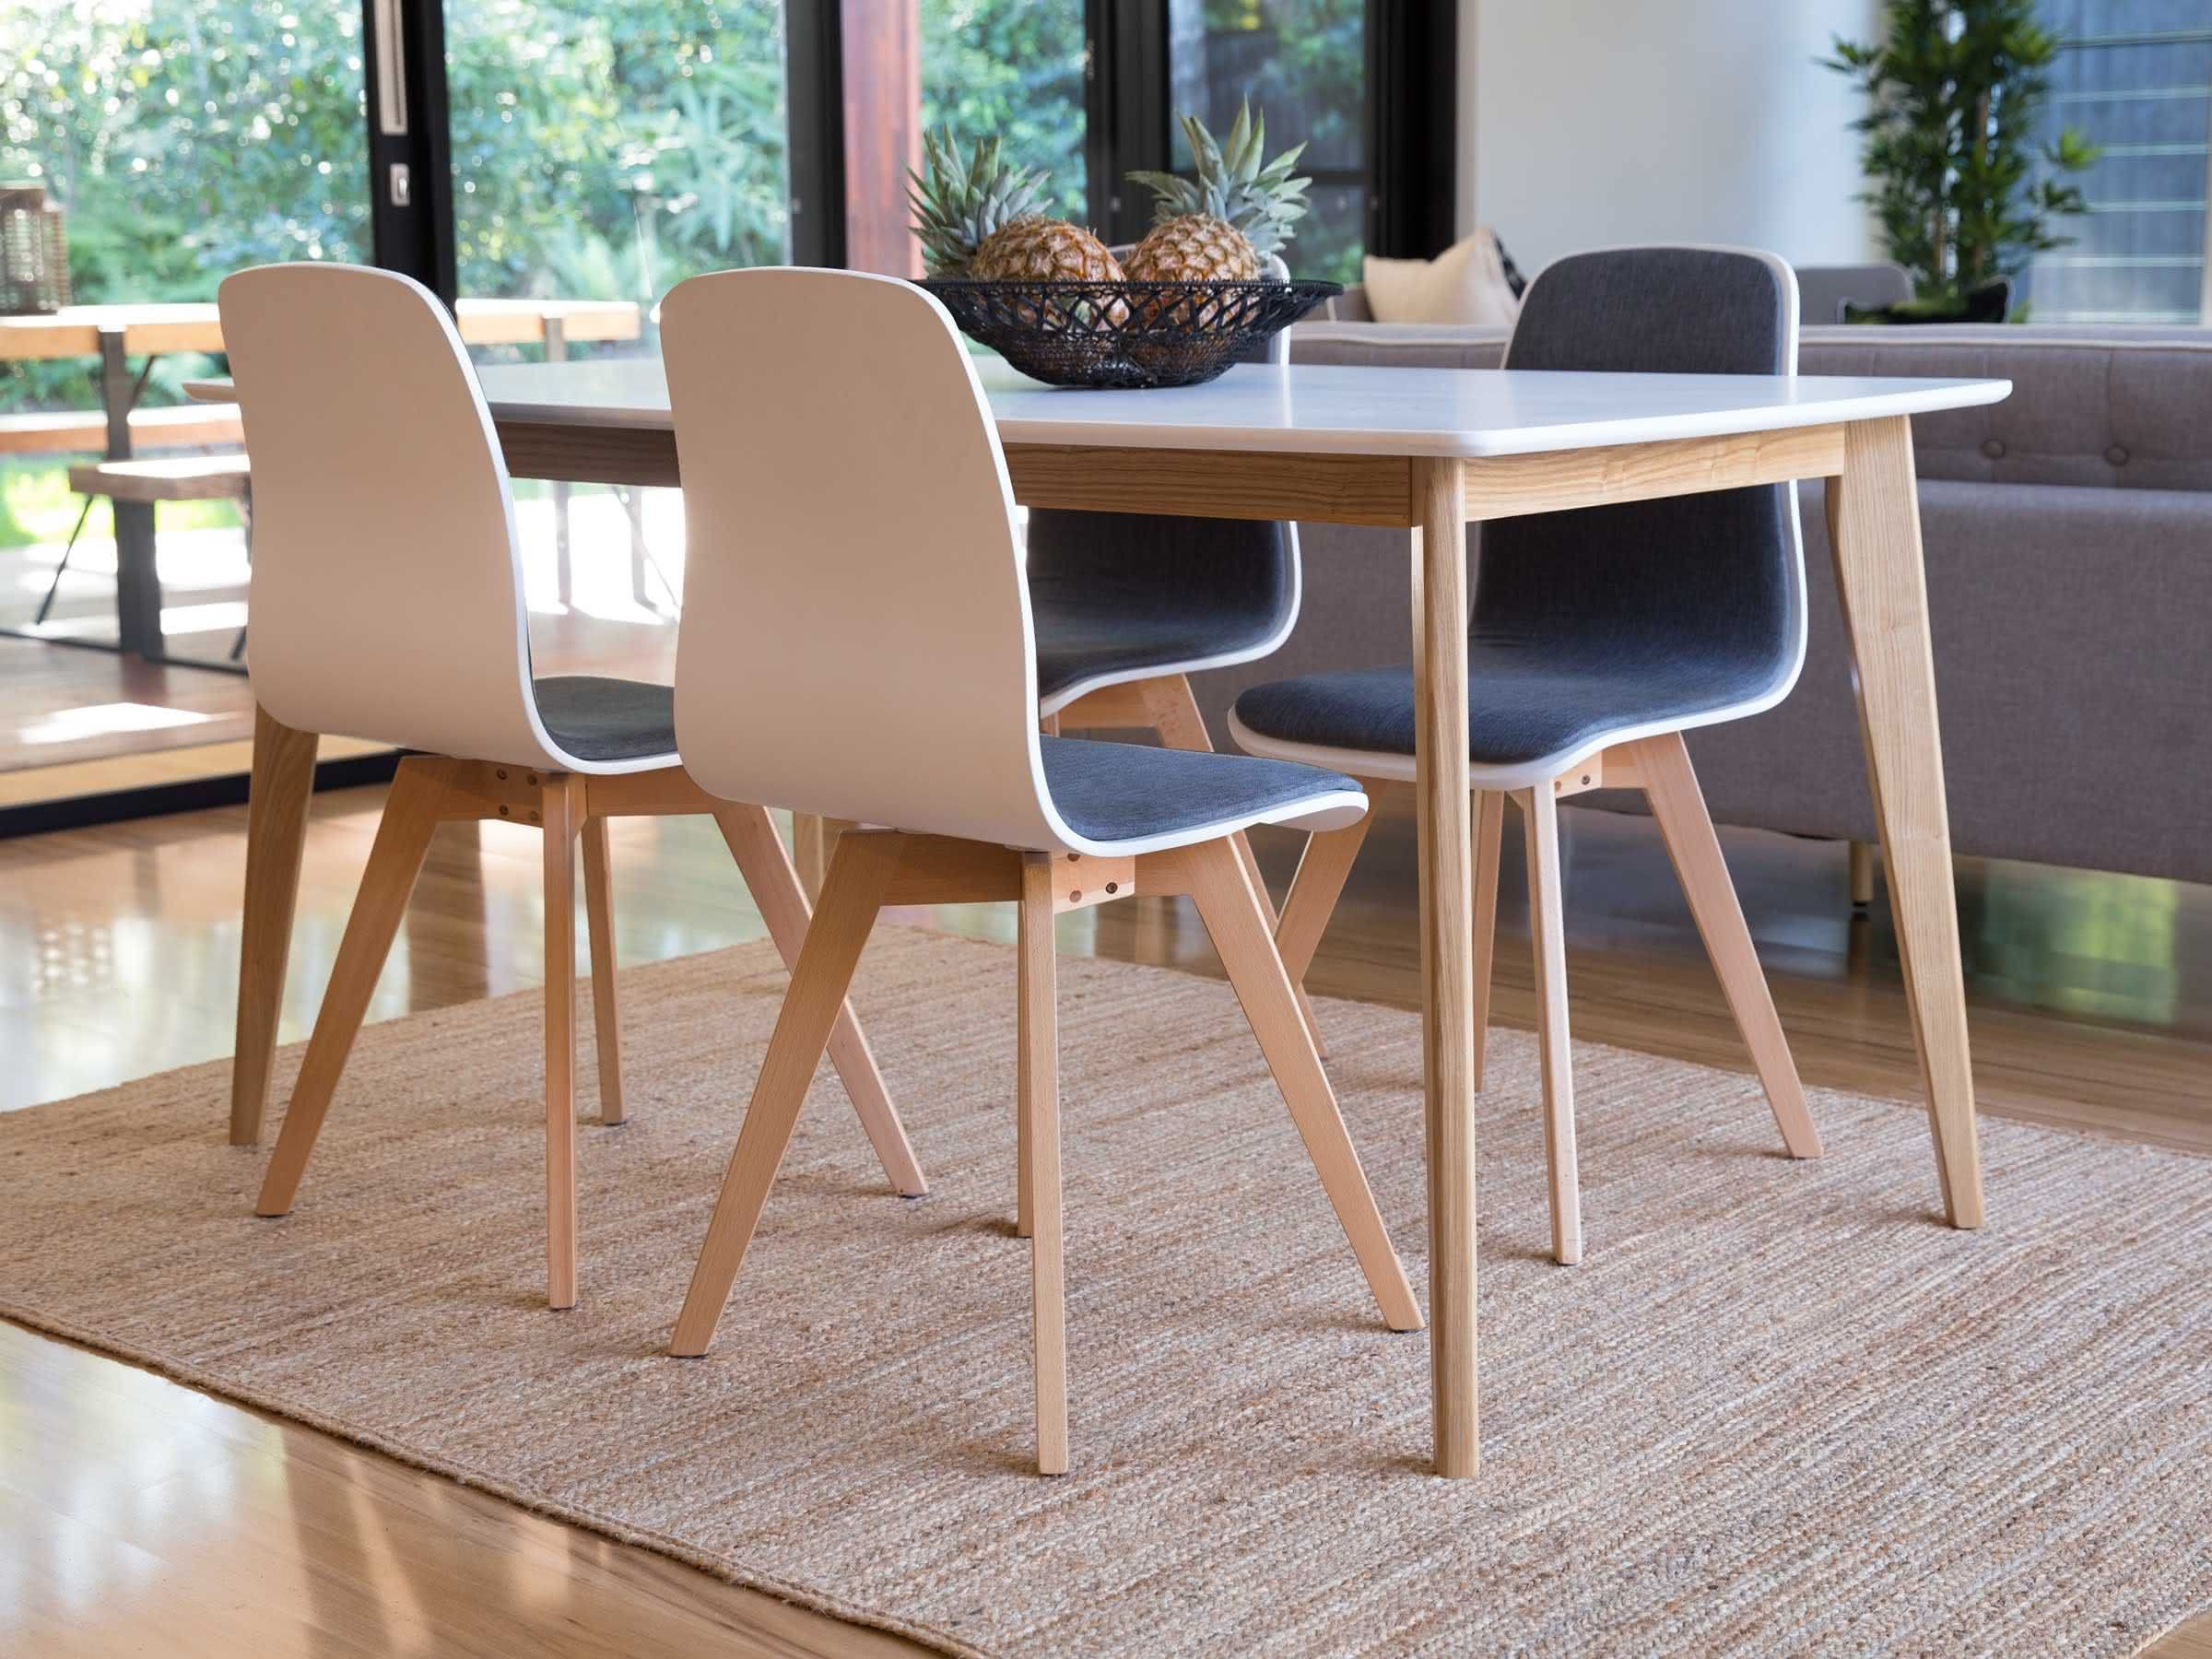 Pin By Lauren Berry On Furniture Wishlist Rug Under Dining Table